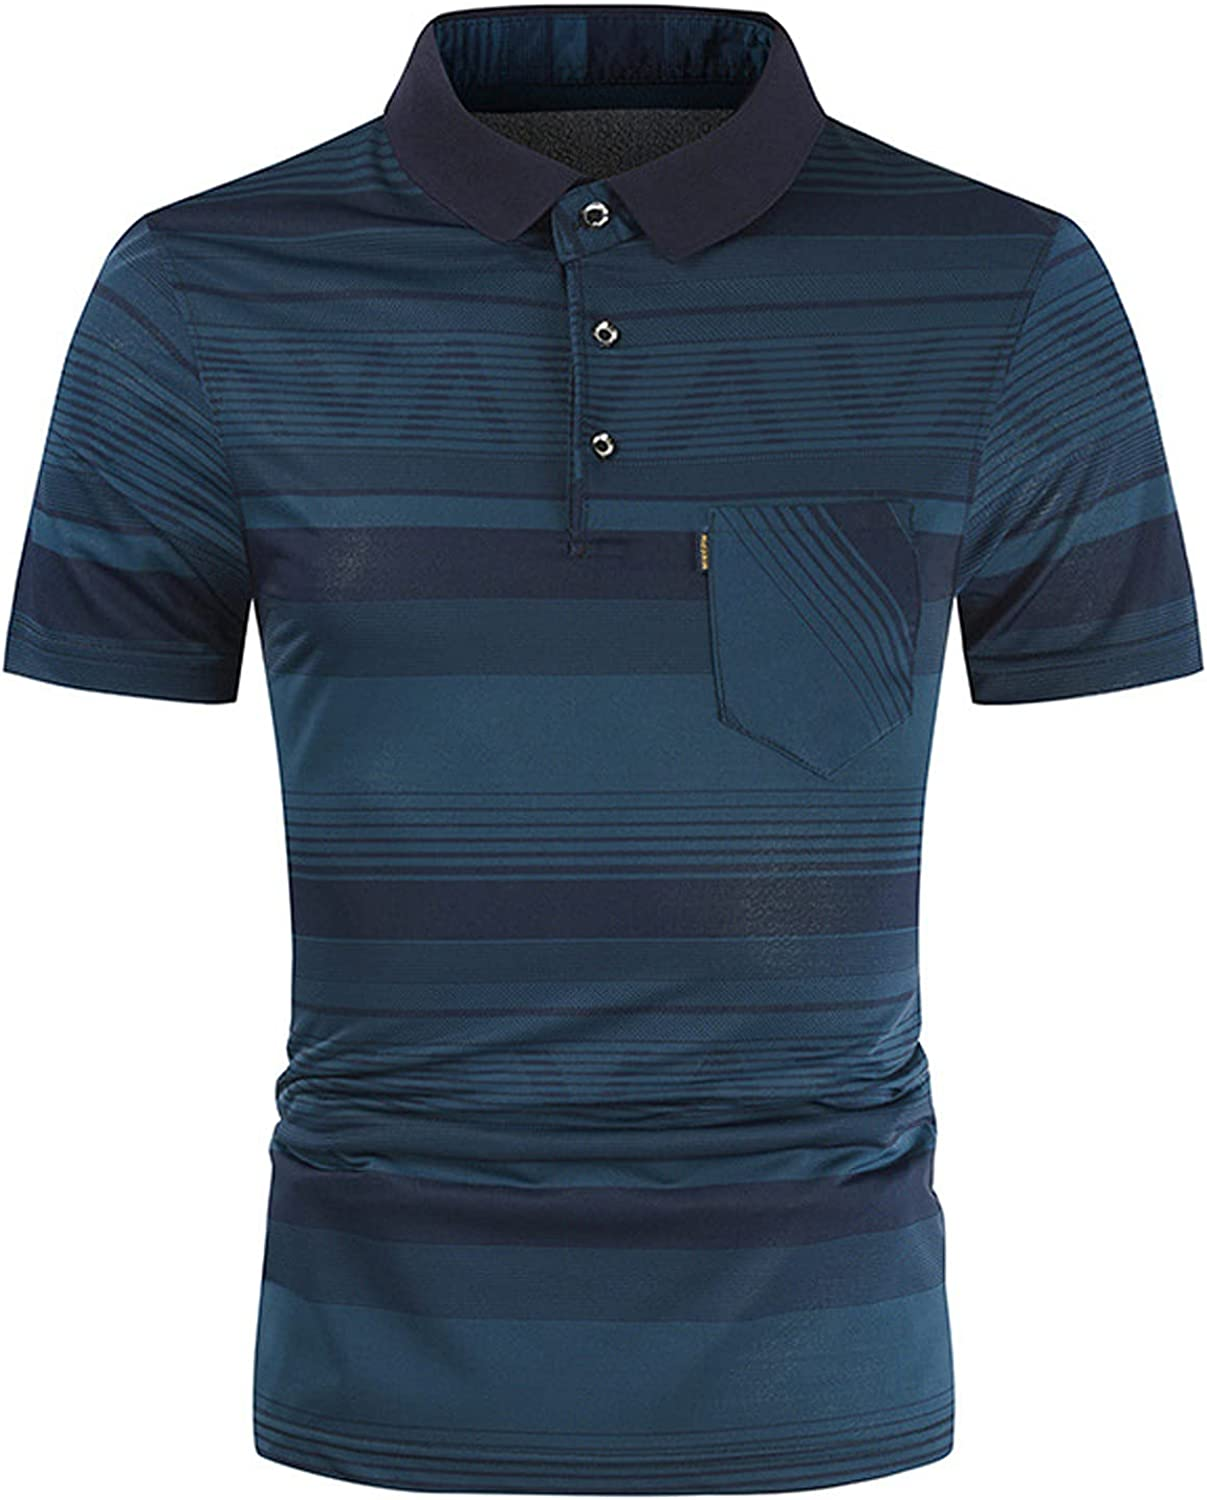 Mens Polo Shirts Short Sleeve with Pocket Summer Slim Casual Fit Patchwork Short Sleeve T-Shirt Top Blouse